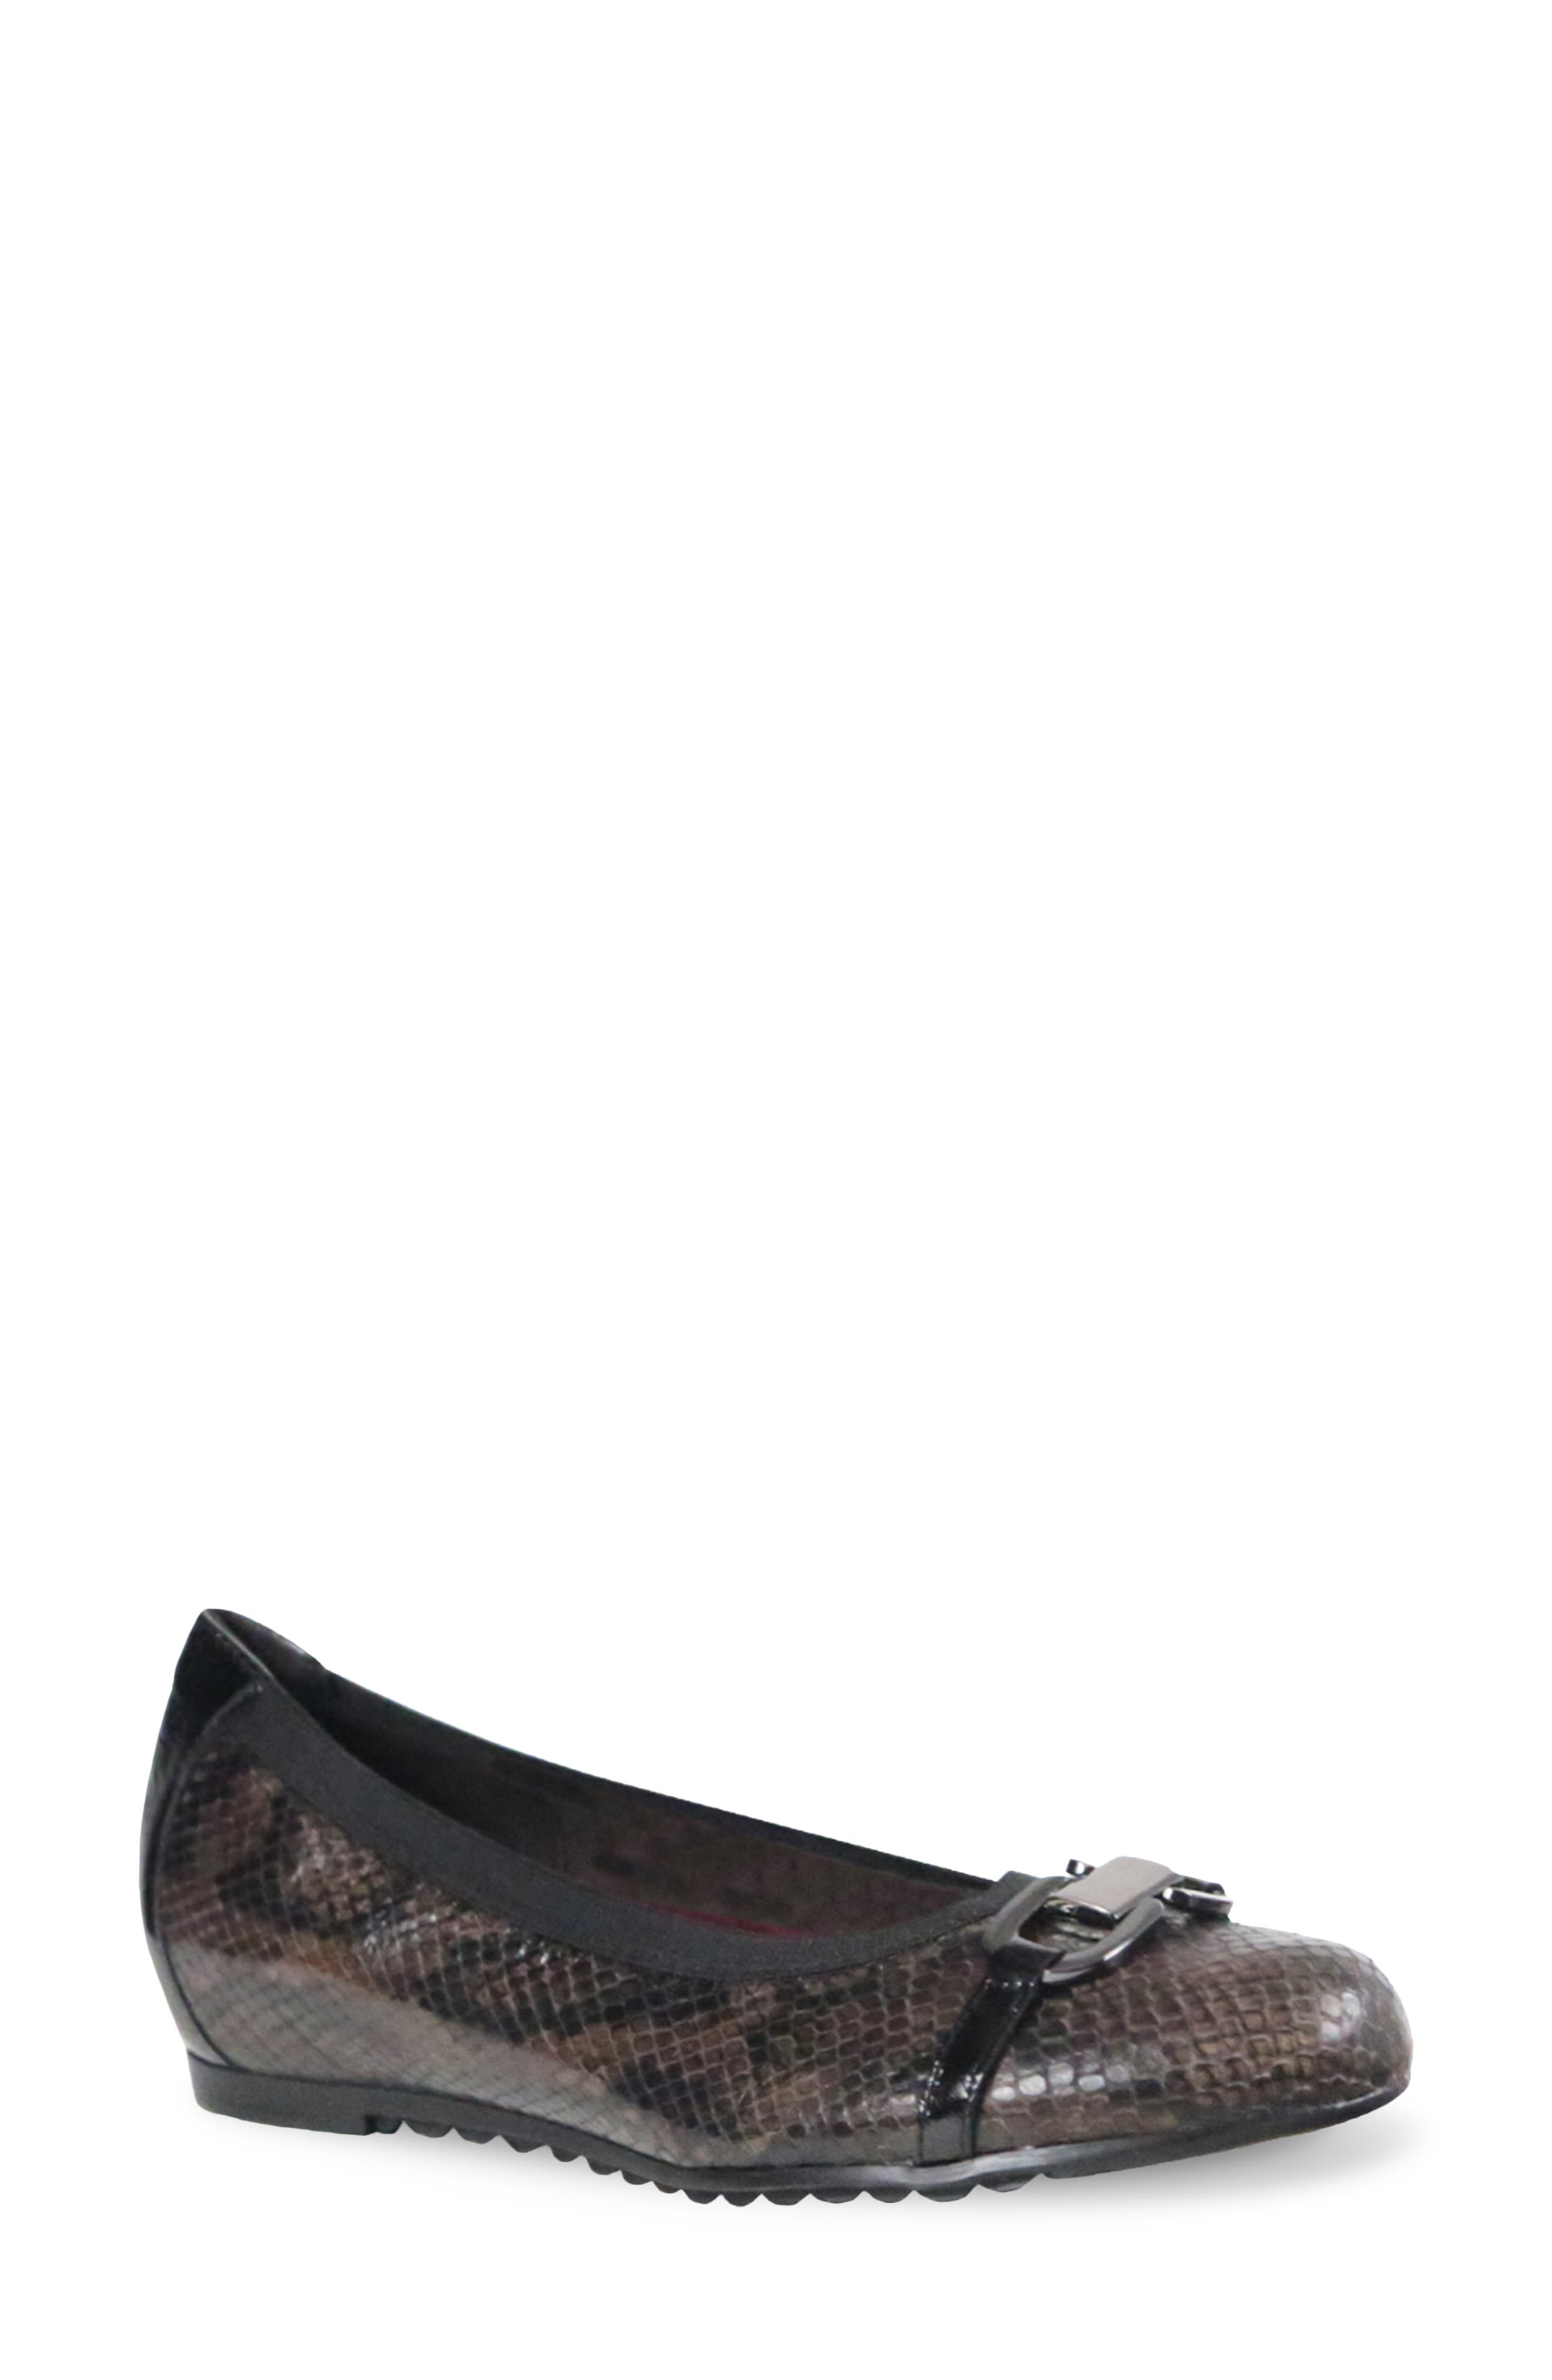 Snake-print leather and metallic hardware lend eye-catching appeal to a ballet flat built for comfort with a stretch topline and breathable lining. Style Name: Munro Ivy Ii Ballet Flat (Women). Style Number: 6093593. Available in stores.